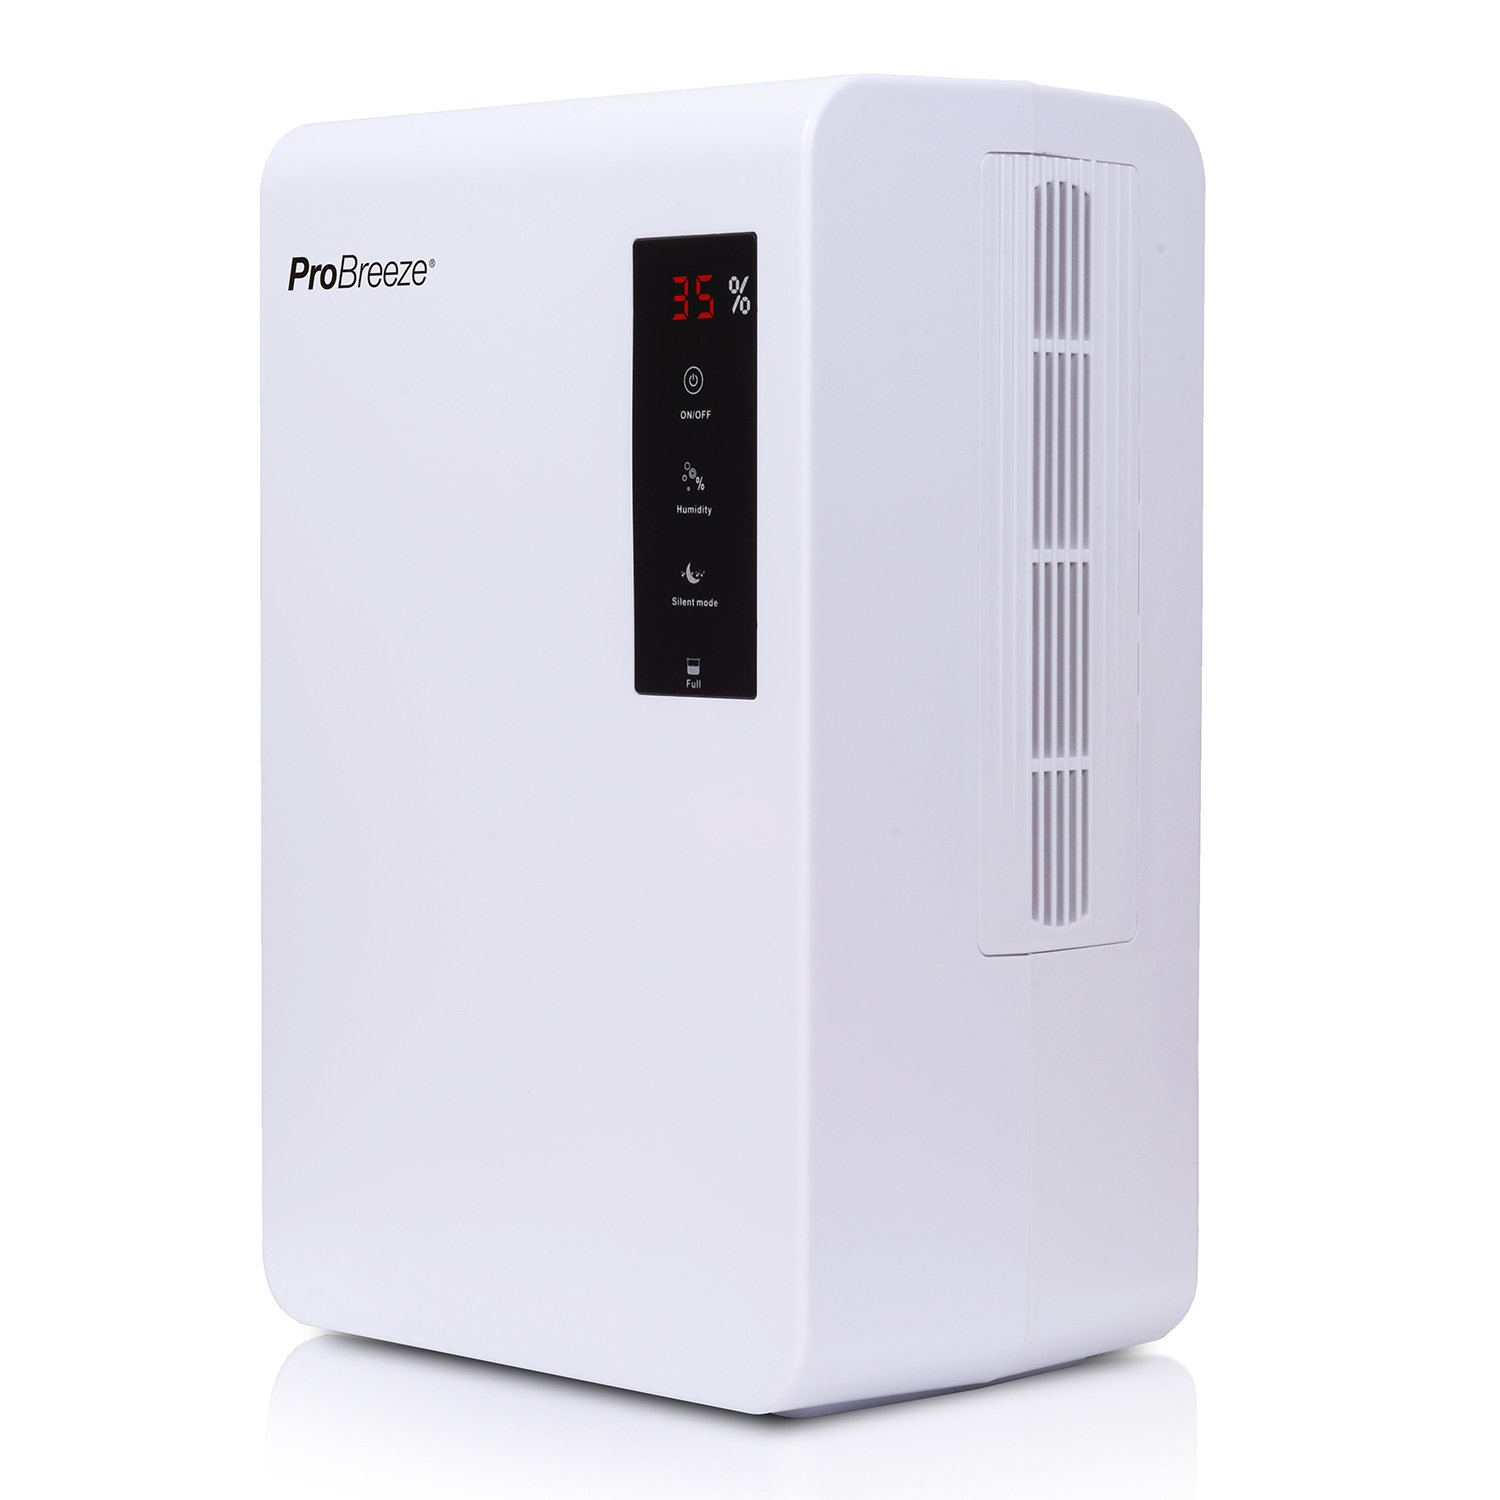 Pro Breeze Electric Mini Dehumidifier, 5 Pint, 5500 Cubic Feet - Perfect for Attics, Bedrooms, Bathrooms & Closets | Ultra Quiet Thermo-Electric Technology with Built in Humidistat PB-05-US